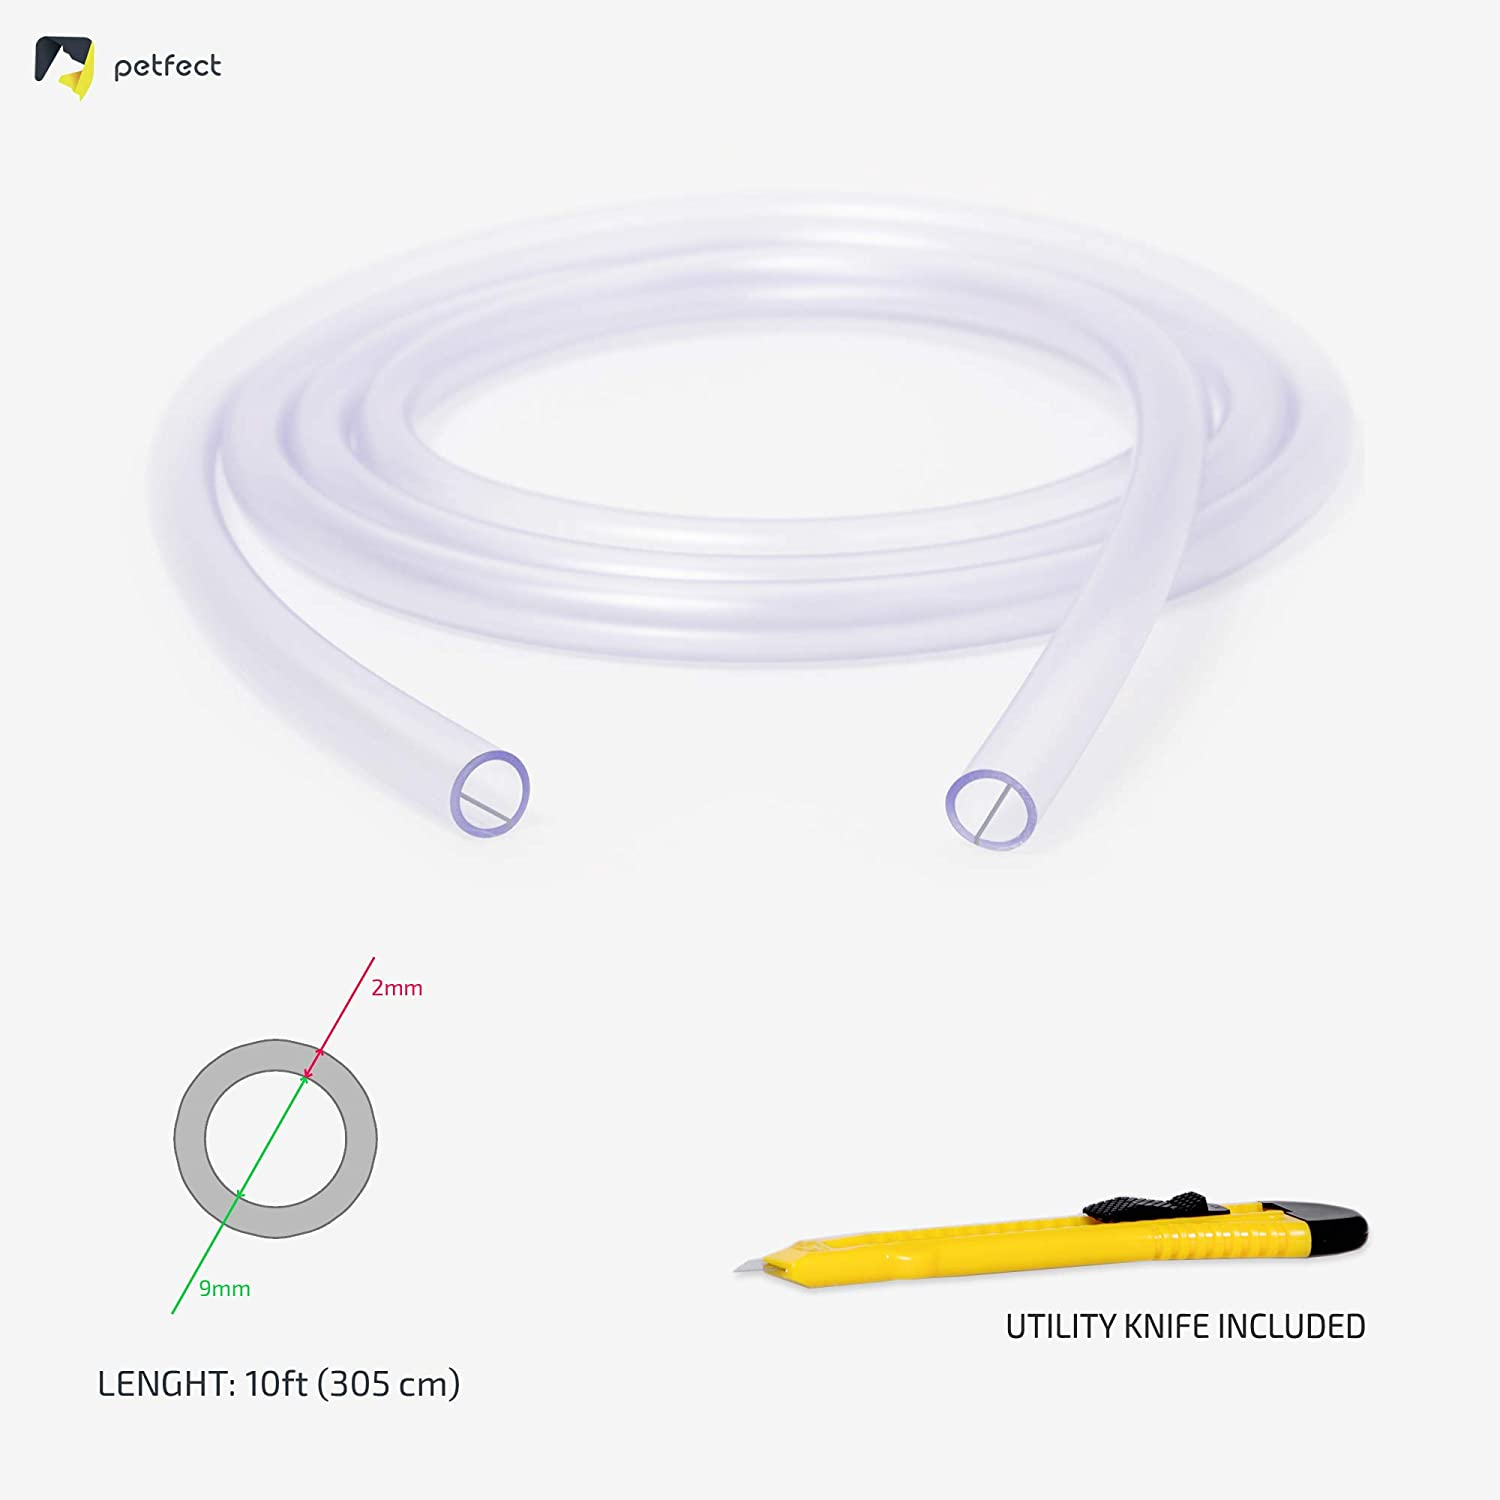 Ethernet RCA /& HDMI Cables Pet Wire Protector Flexible Cable Sleeve Odor-Free Cat /& Dog Chew Proof Electrical Power /& Charger Cord Cover for Lighting 2mm Thick Overfloor Universal Protection